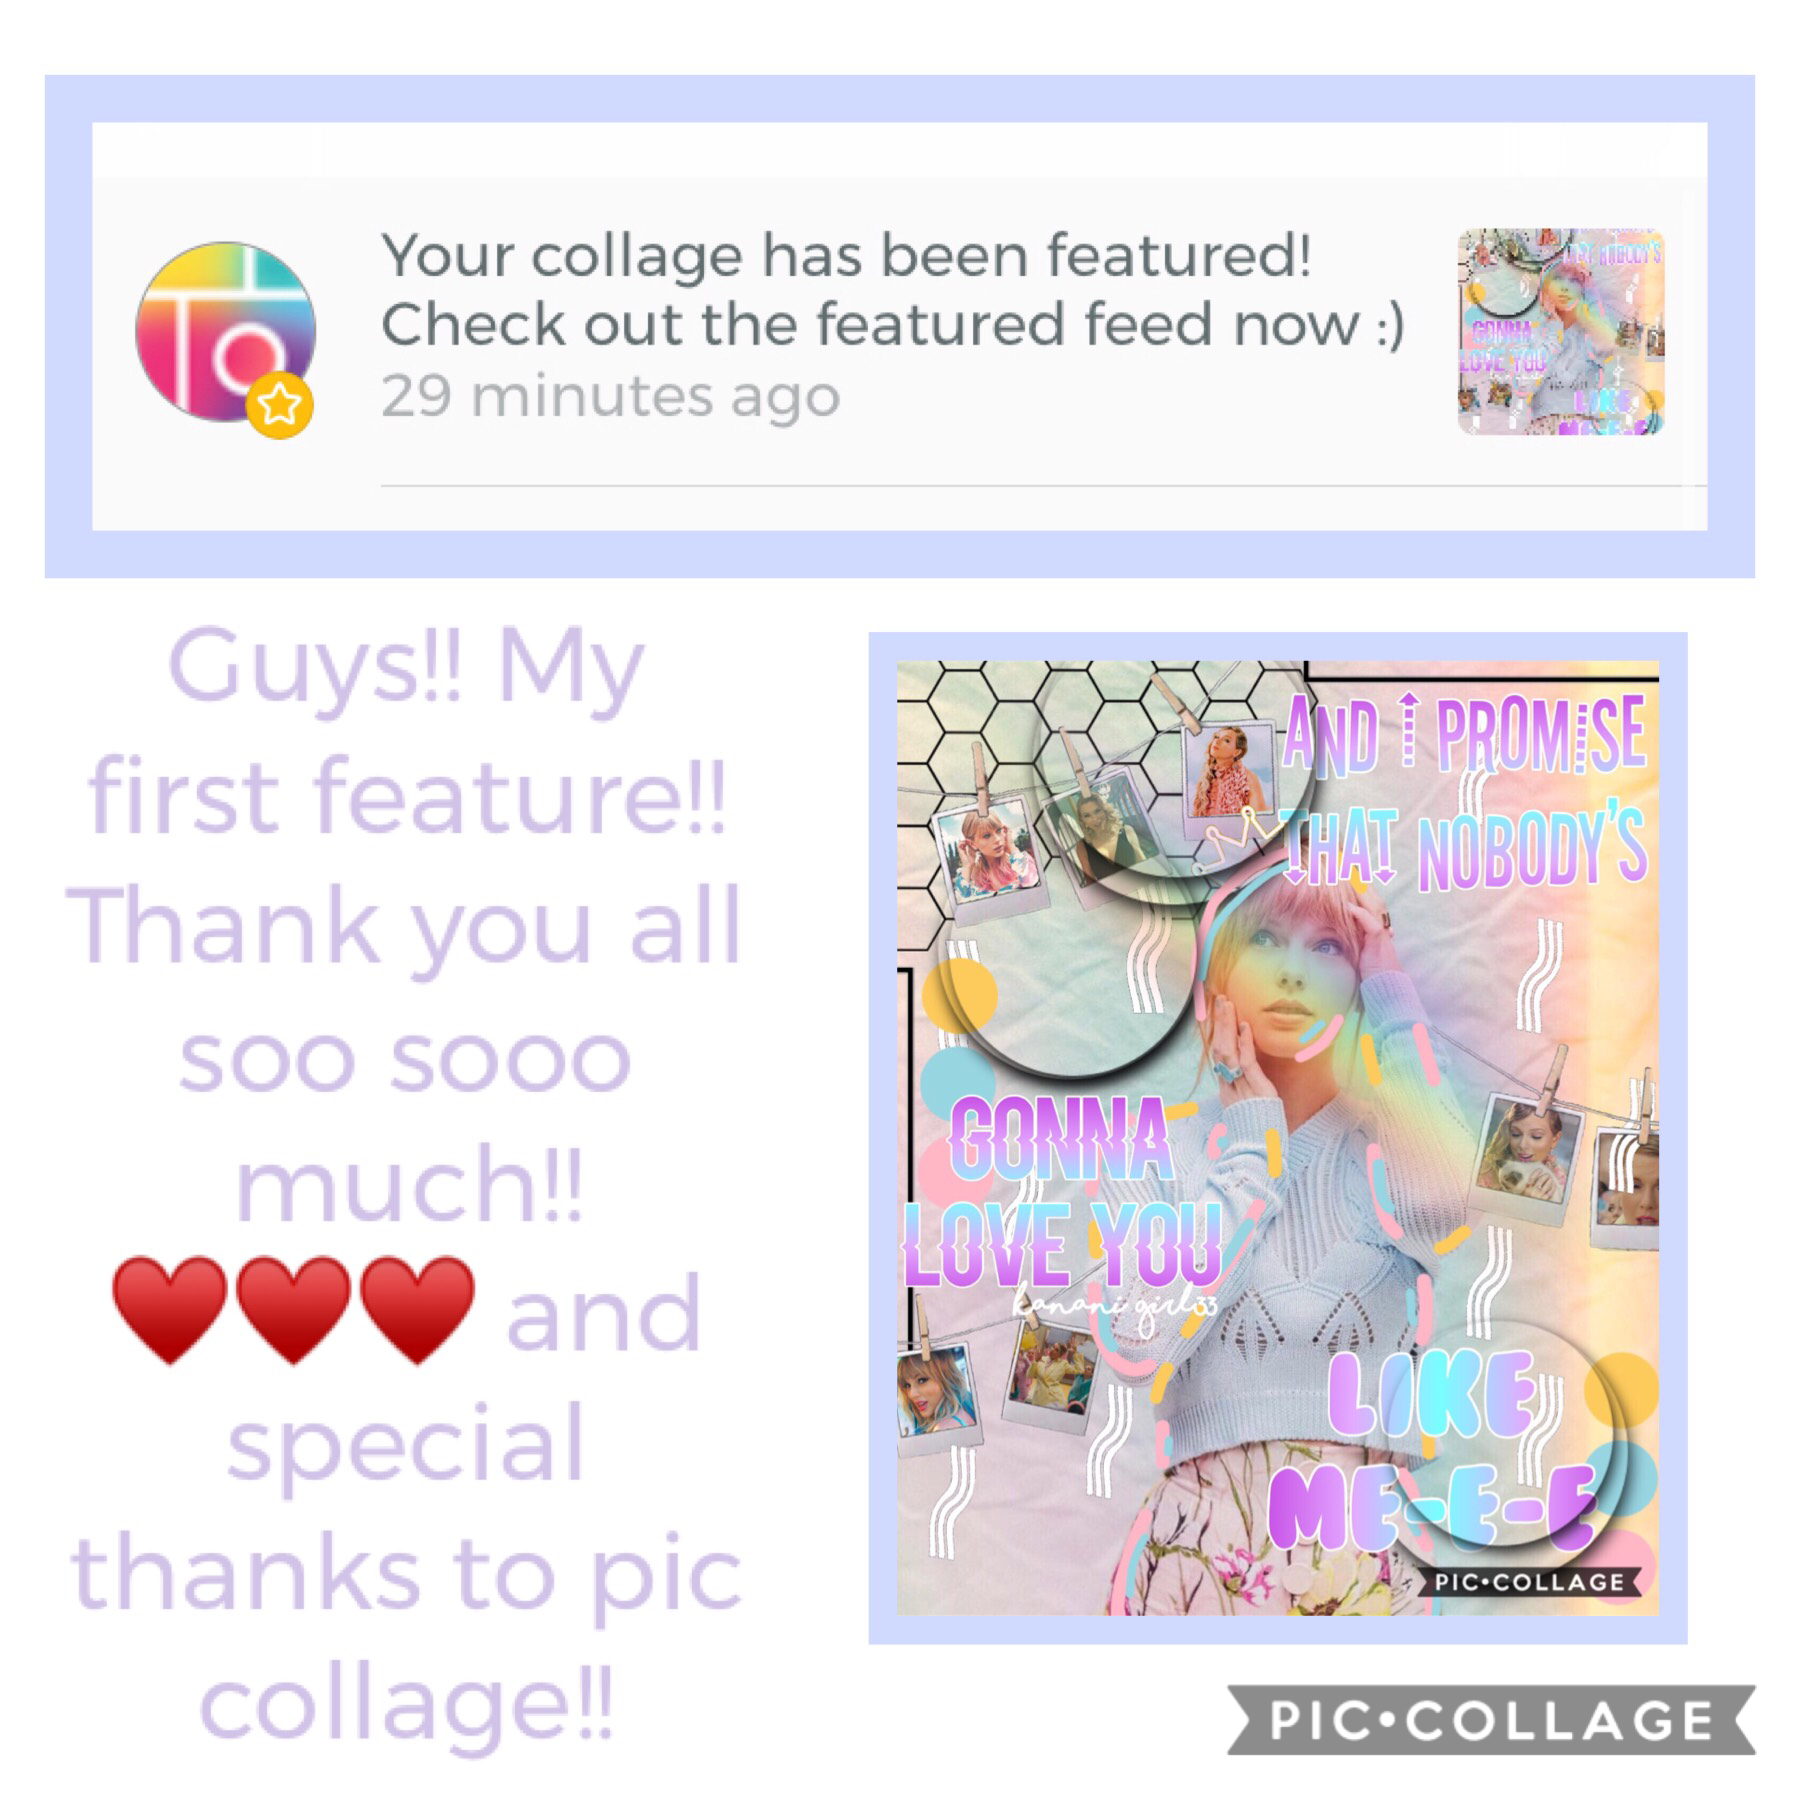 Thank You All!!! ♥️♥️♥️♥️